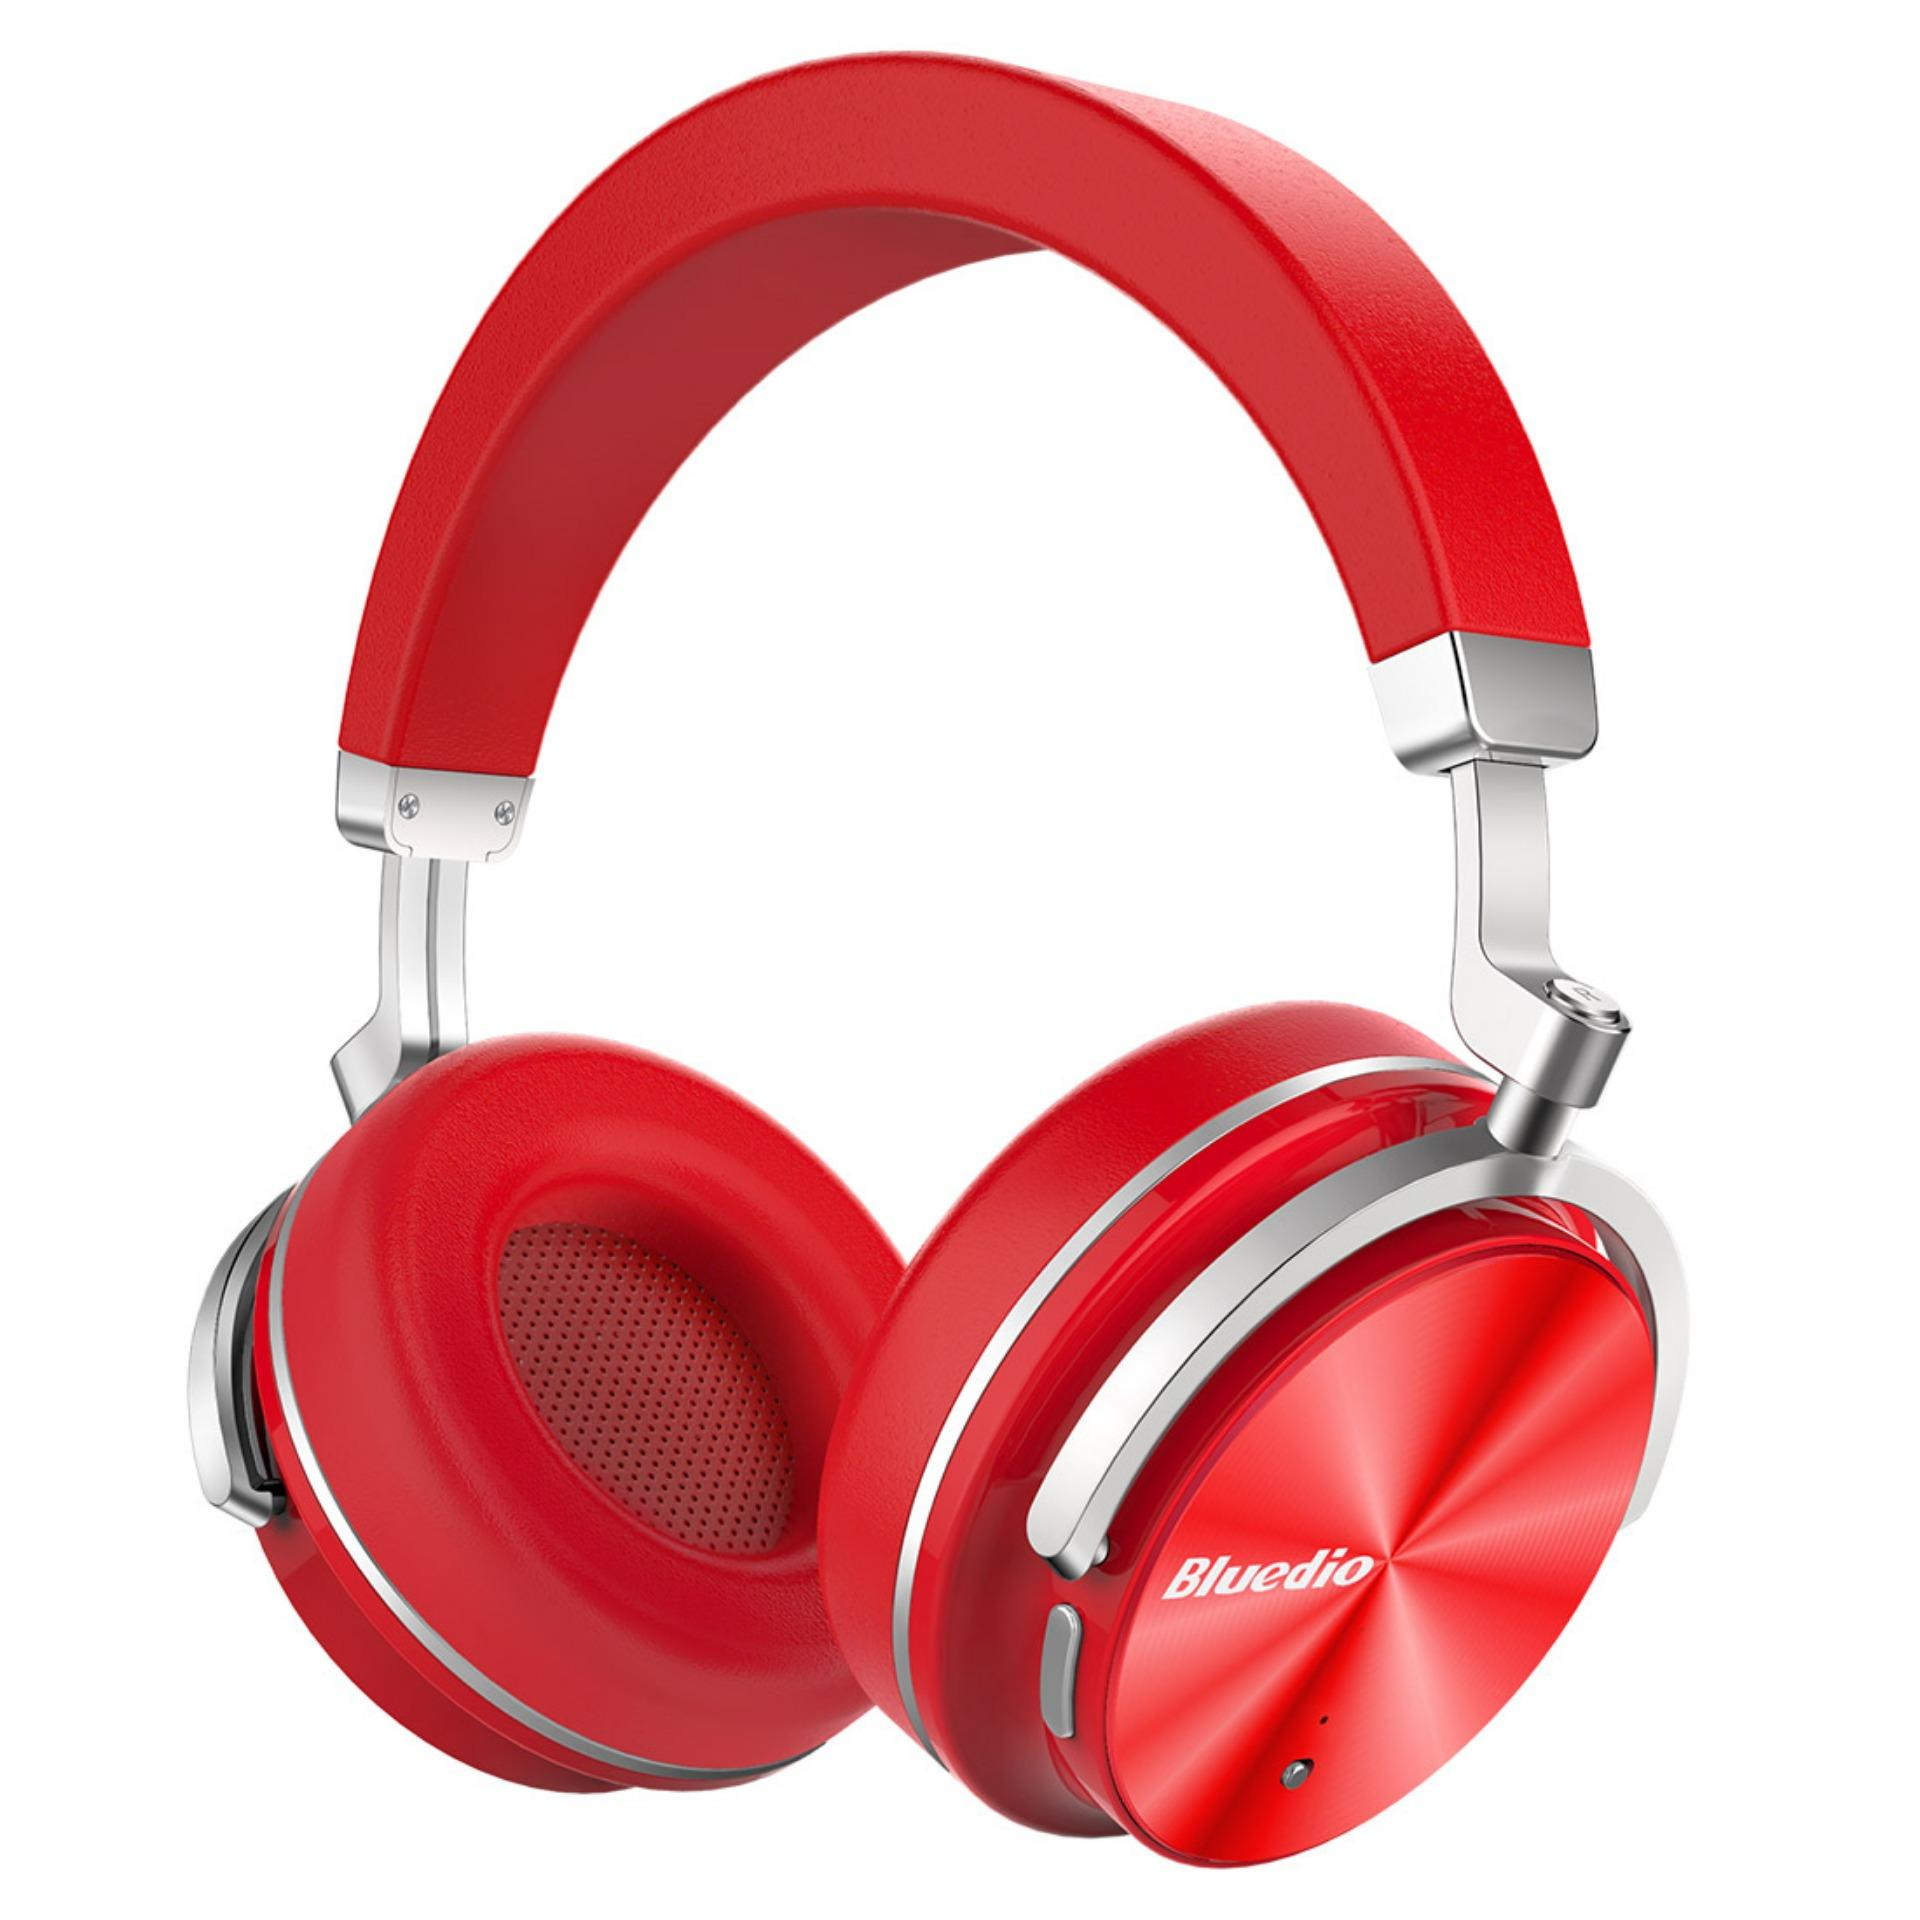 Spek Bluedio T4 Turbin Aktif Noise Cancelling Over Telinga Berputar Nirkabel Bluetooth Headphone Dengan Mic Merah Intl Bluedio